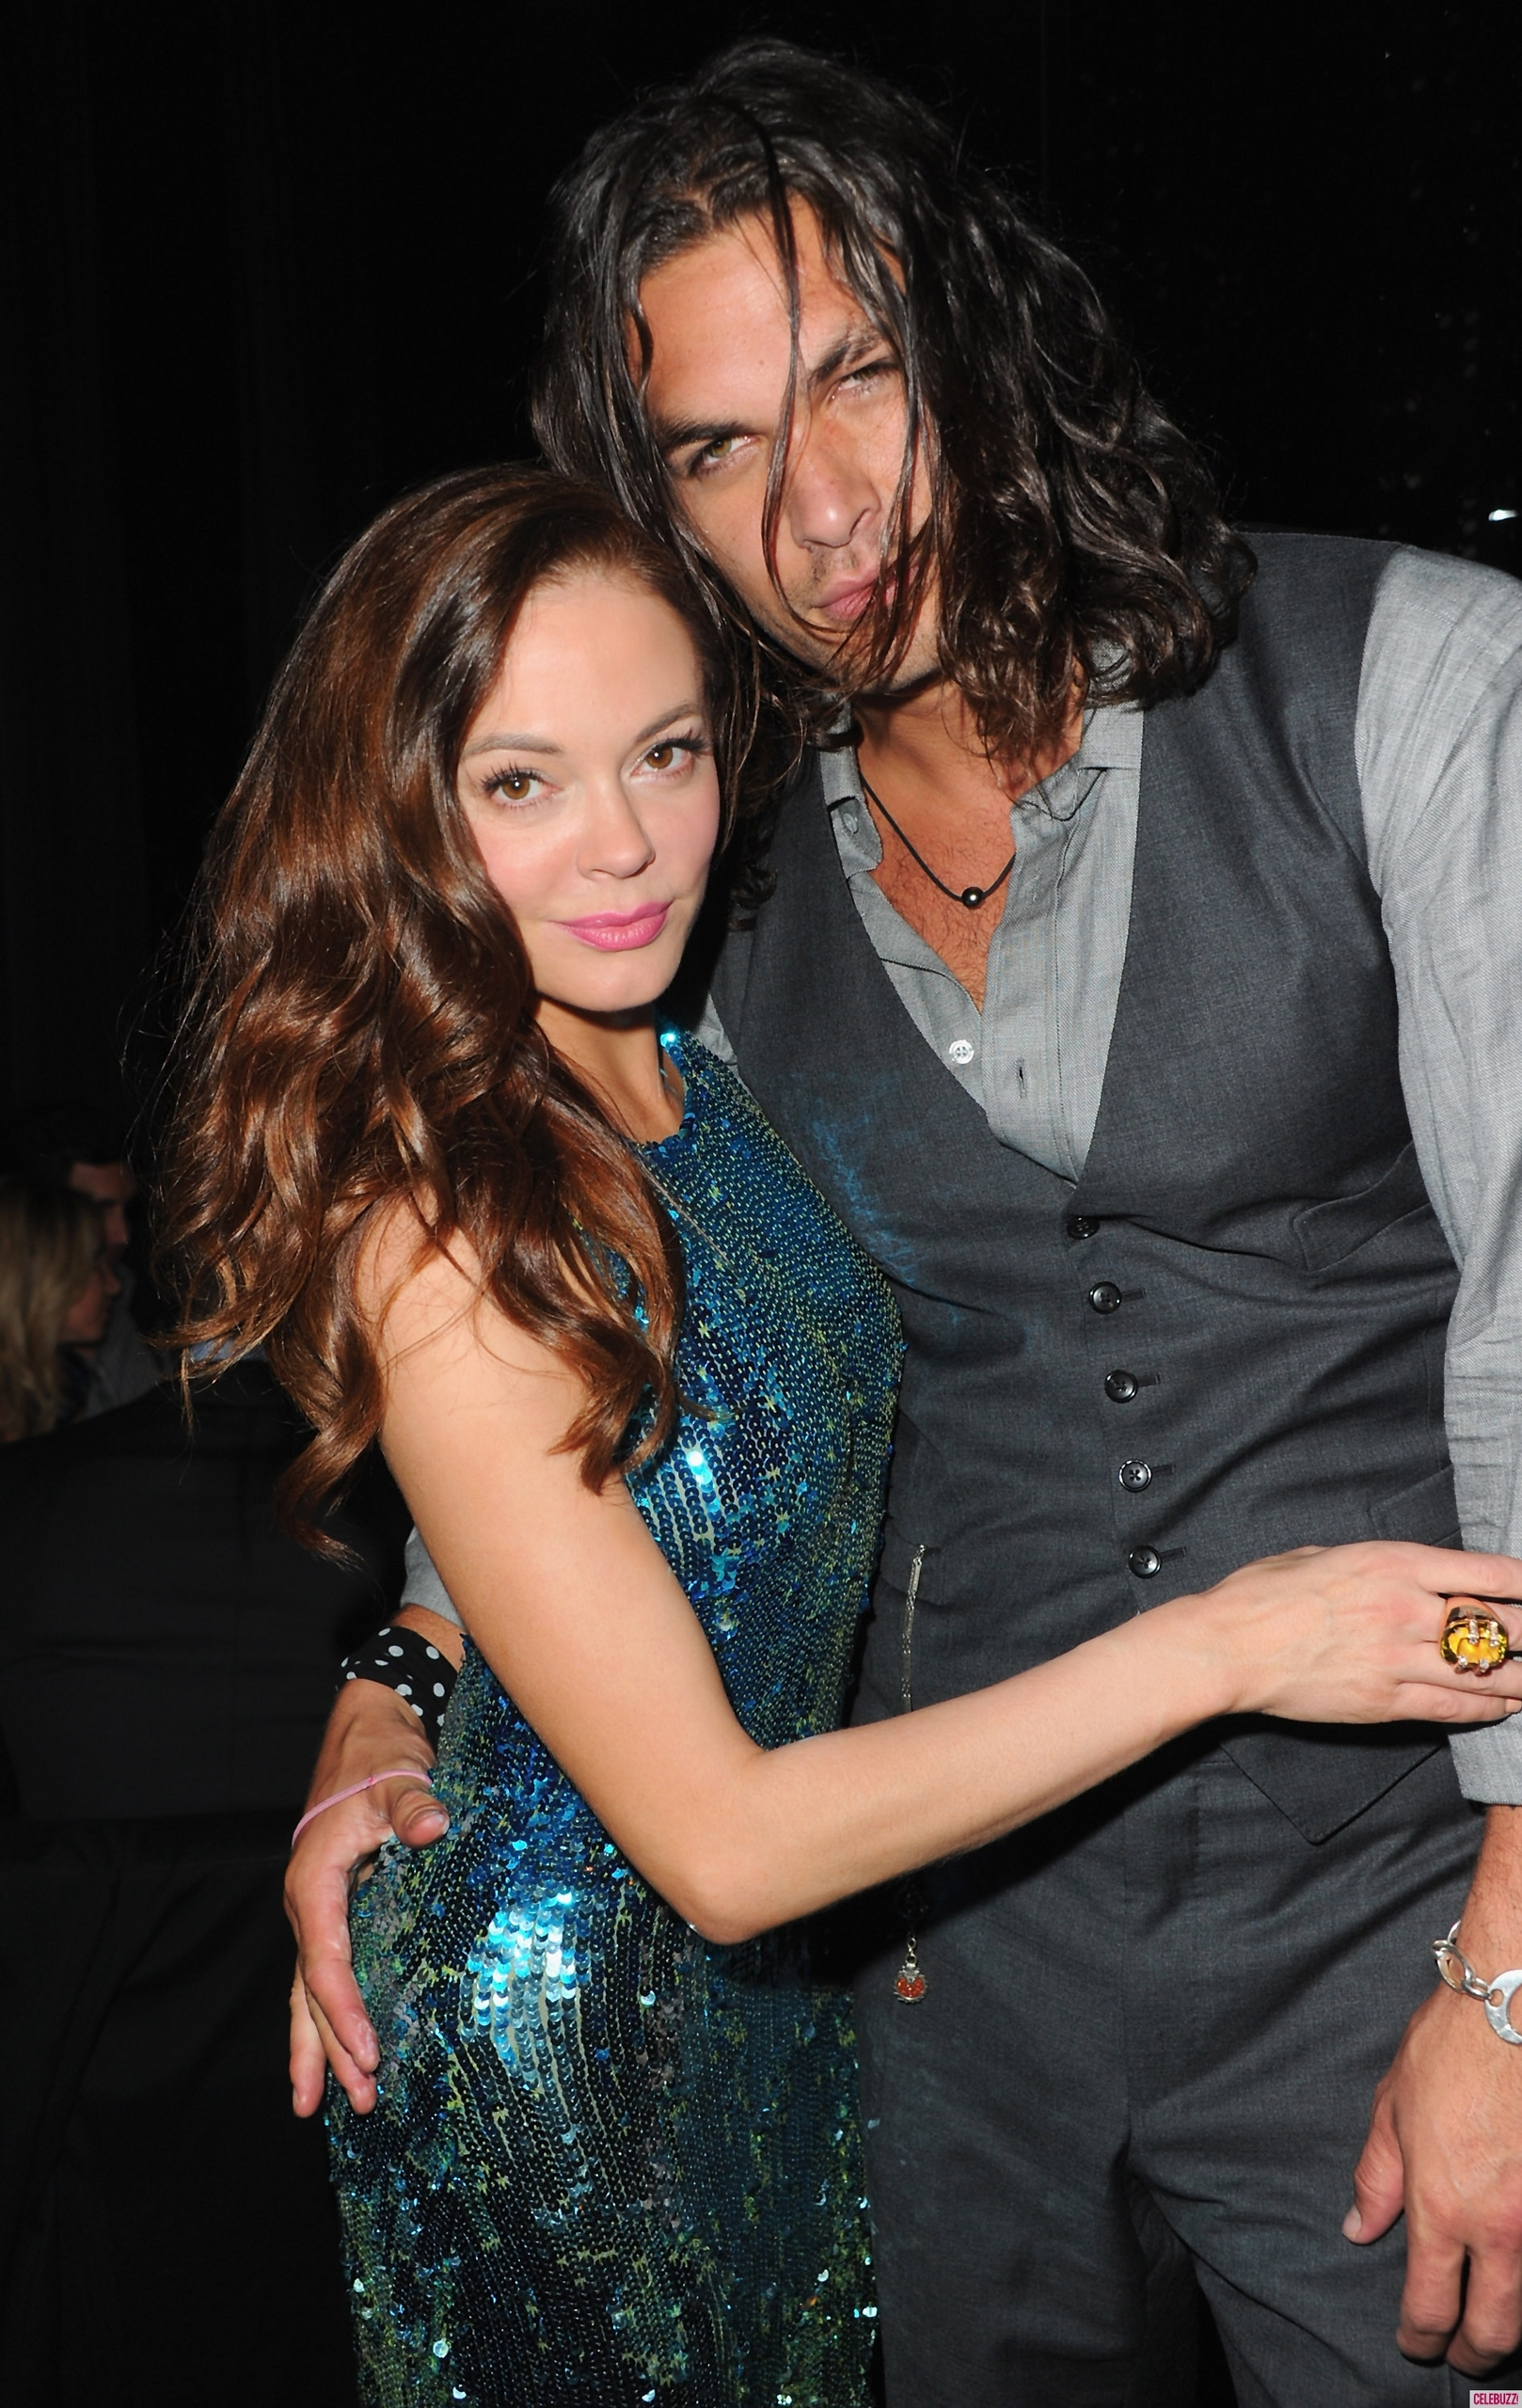 jaosn moma and rose mcgowan jason momoa photo 28691998